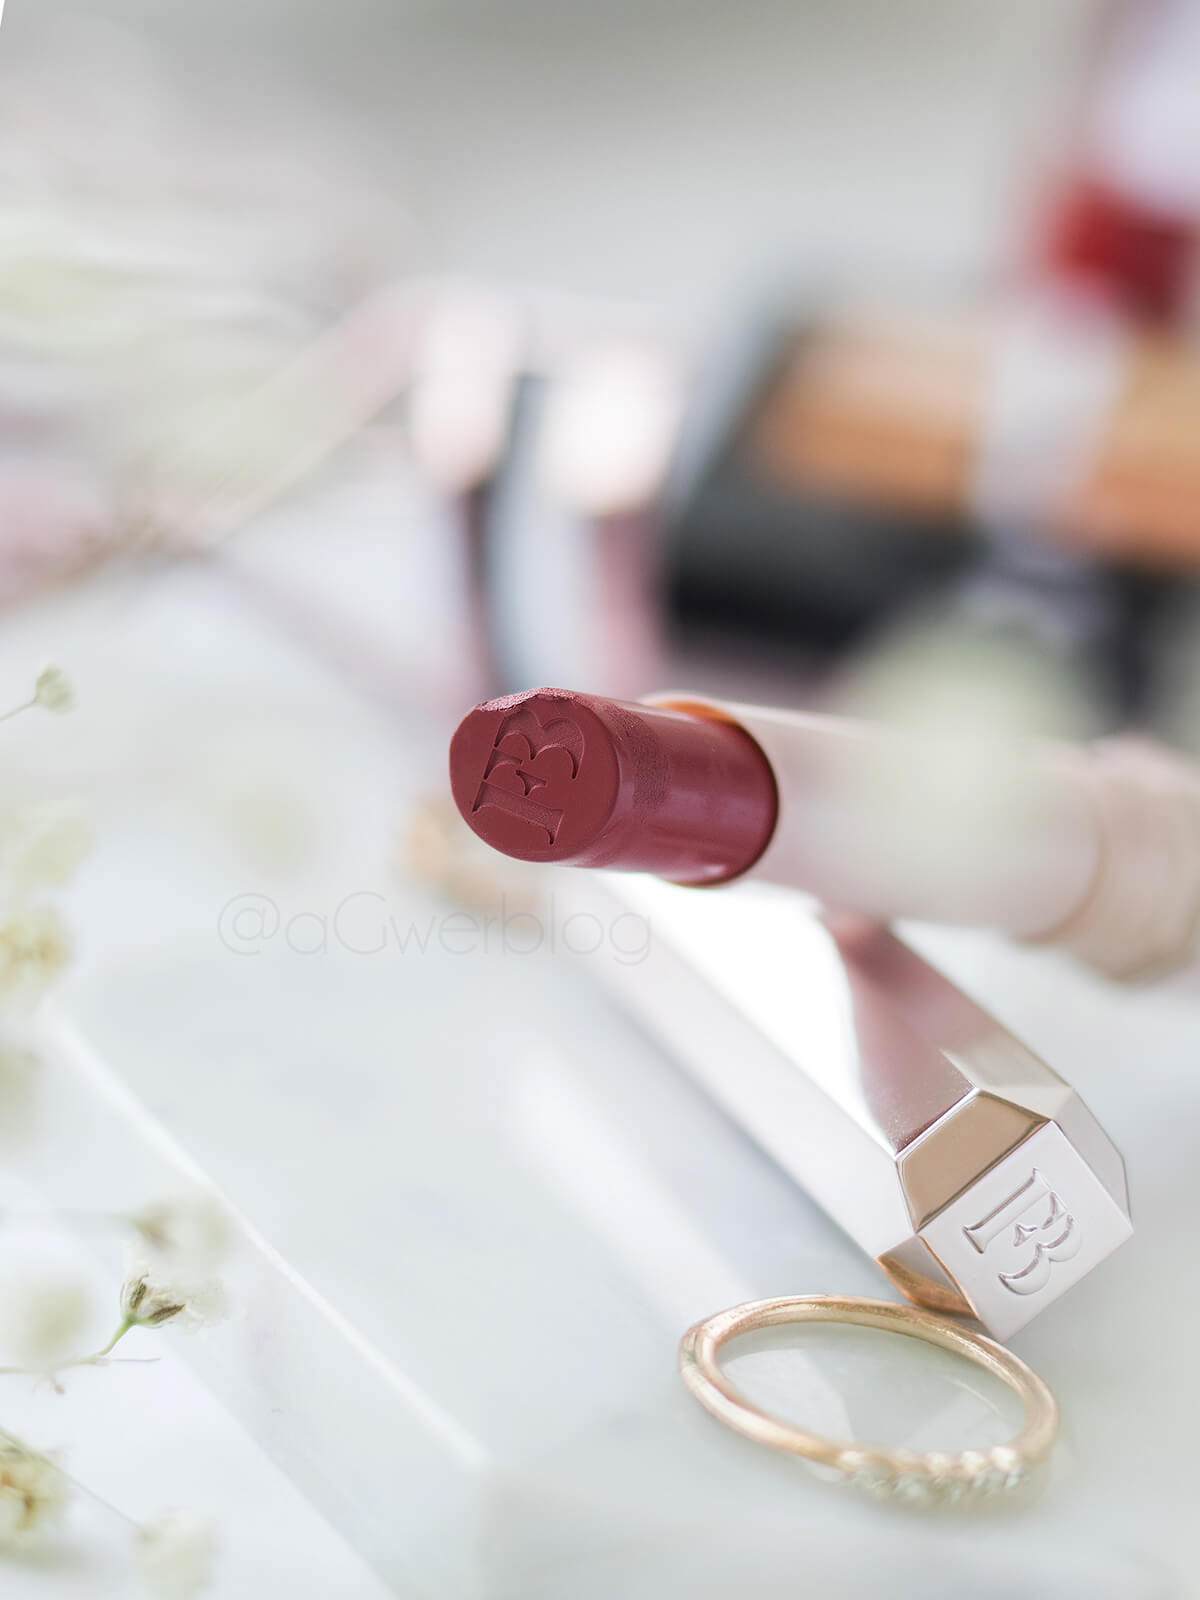 Fenty Beauty Mattemoiselle Spanked